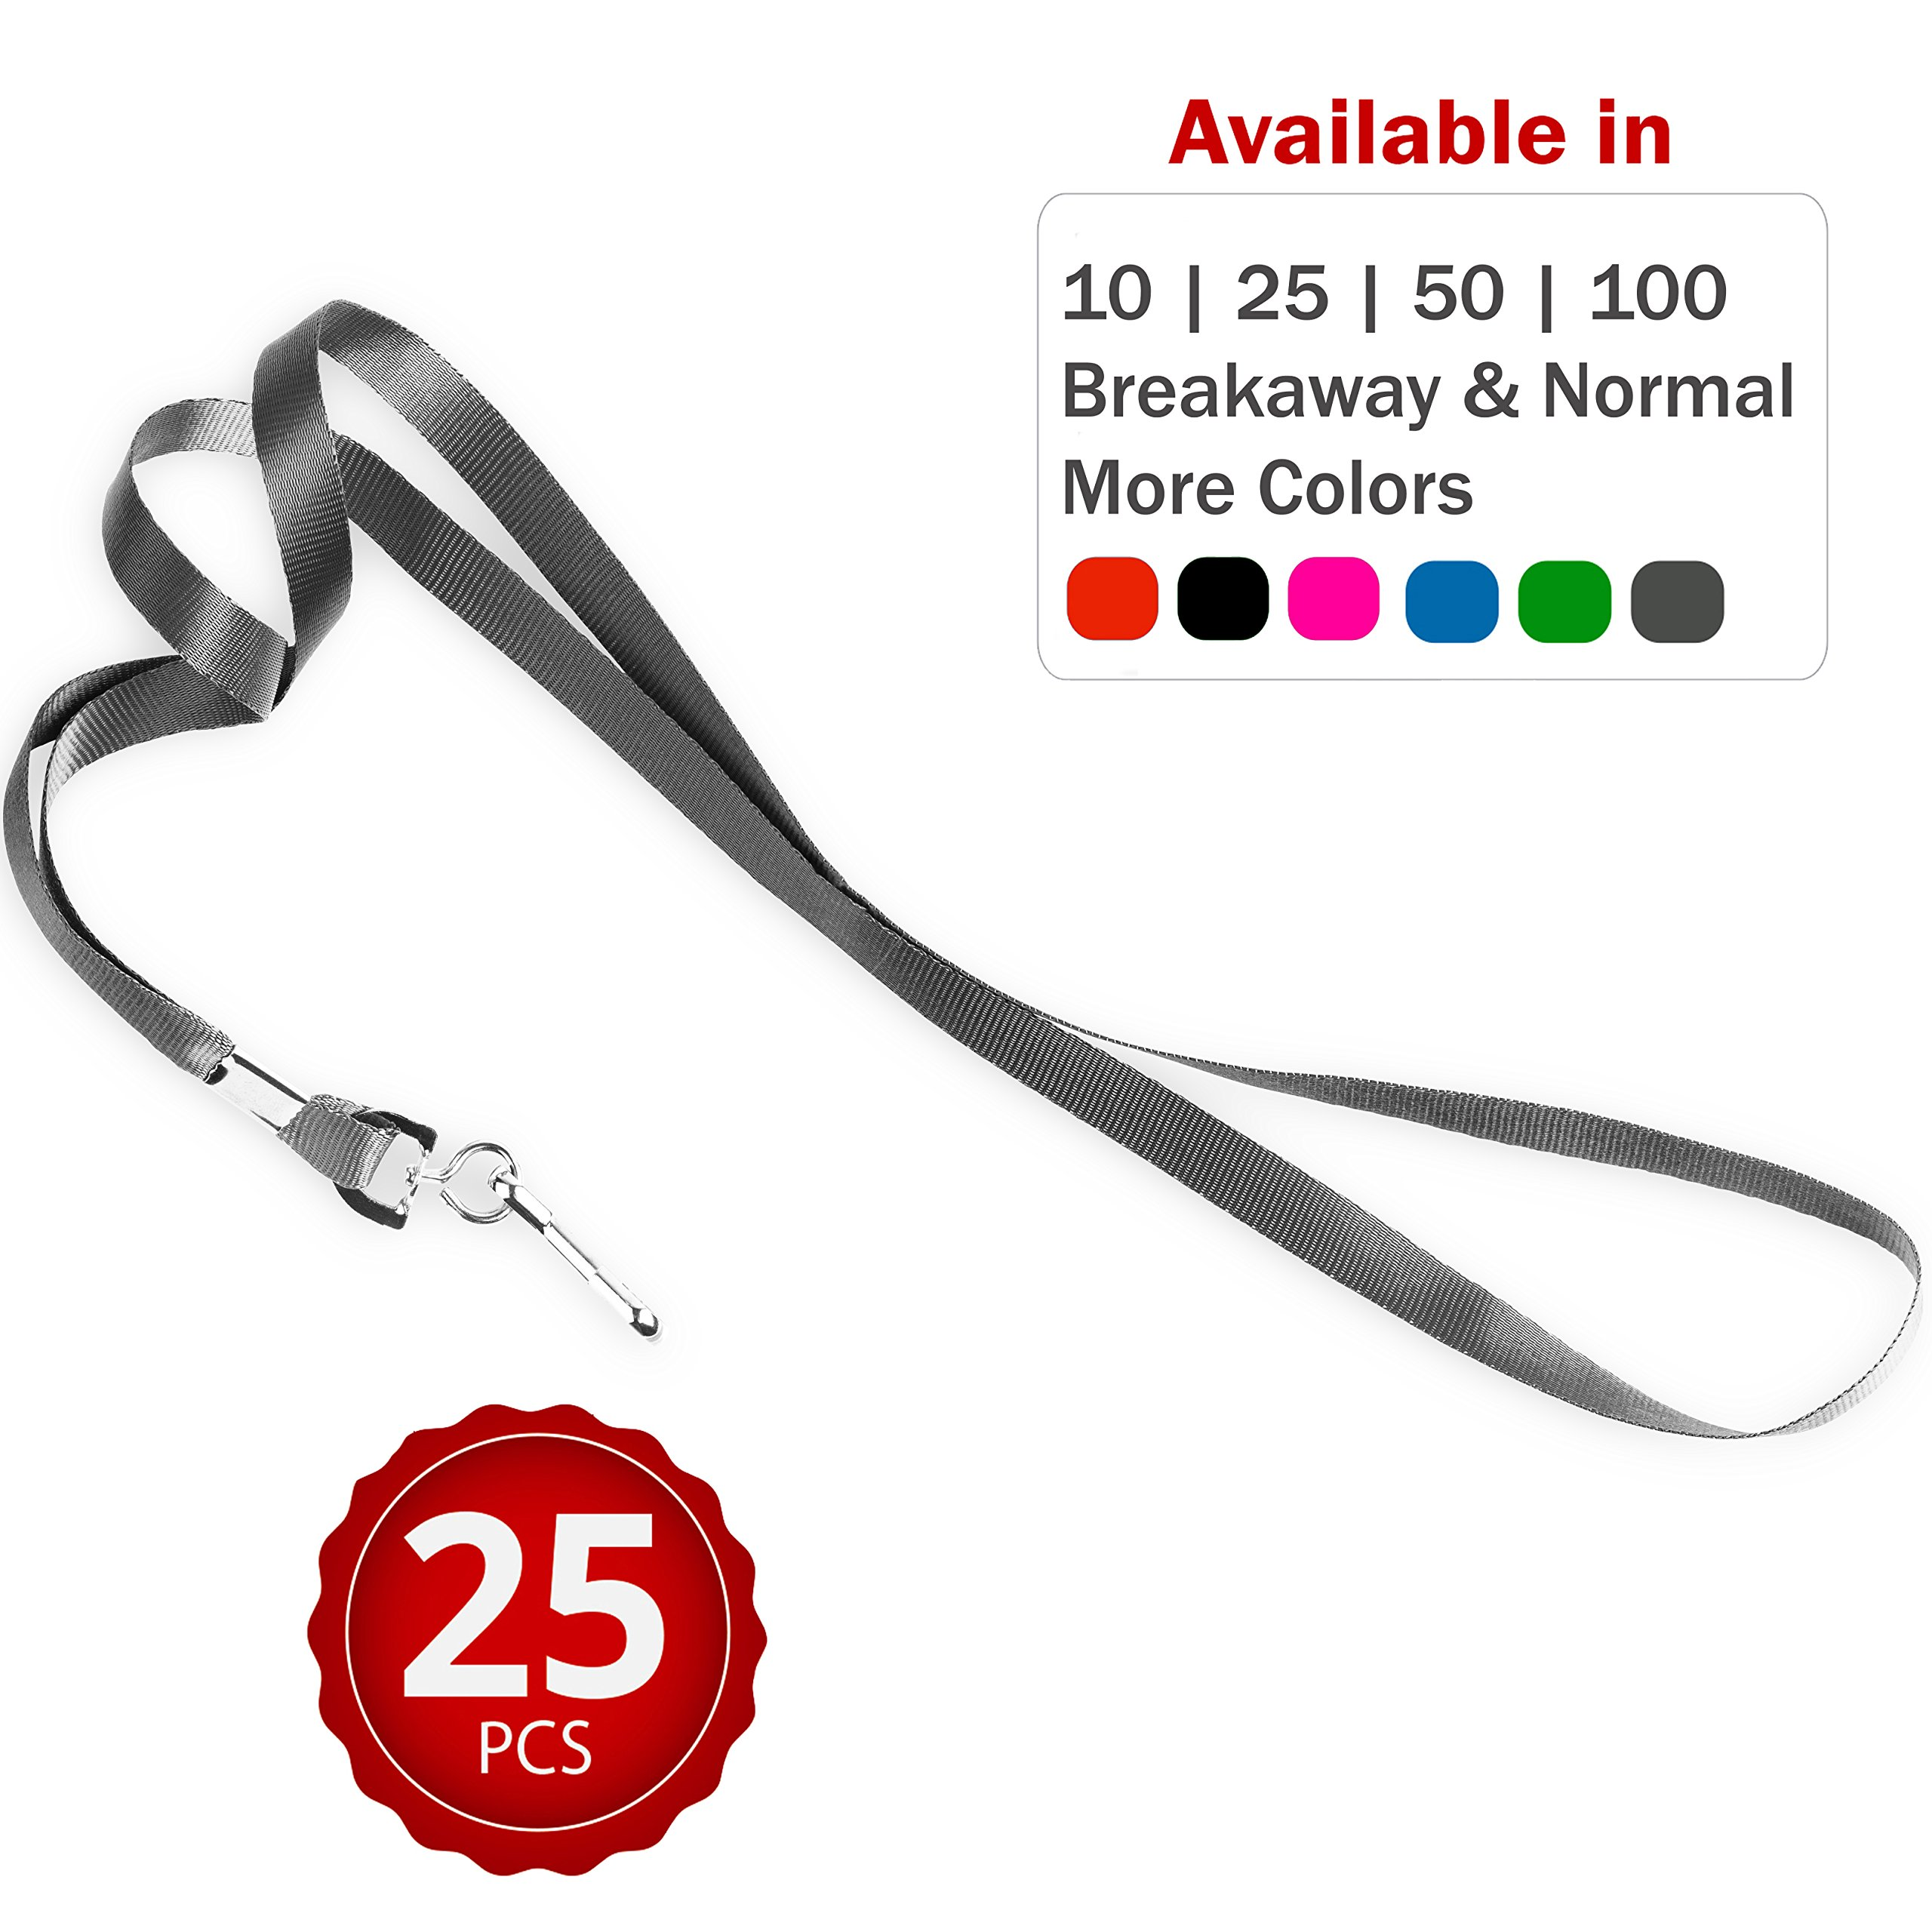 Durably Woven Lanyards ~Premium Quality, Smoothly Finished for Skin-Friendly Comfort ~ for Moms, Teachers, Tours, Events, Businesses, Cruises & More (25 Pack, Grey) by Stationery King